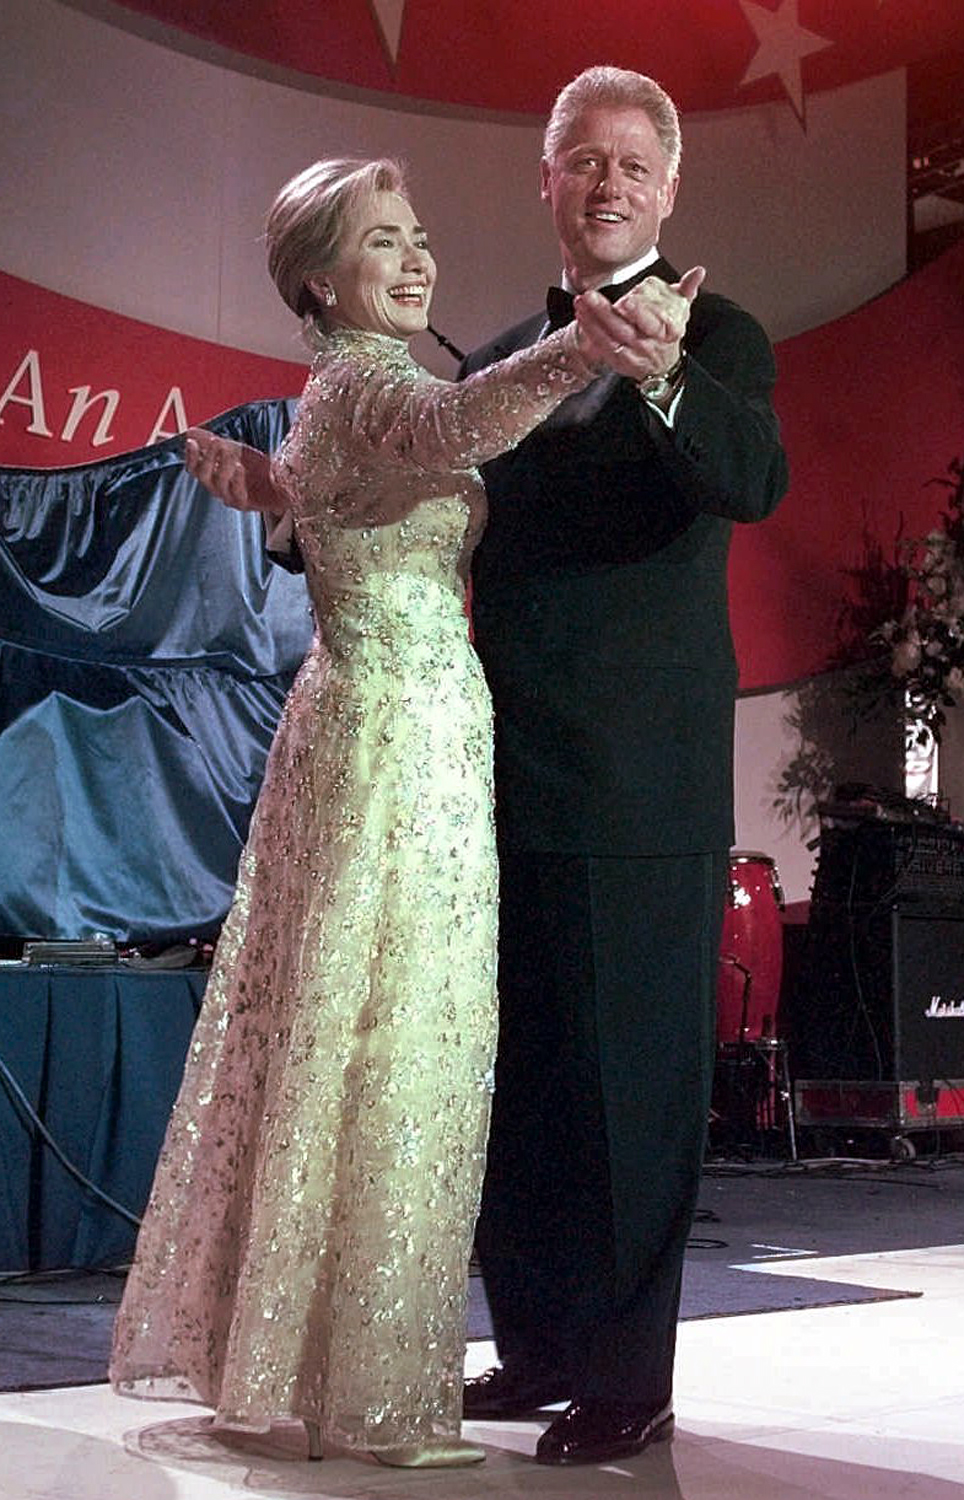 Gown and country: Inaugural ball gowns through the years